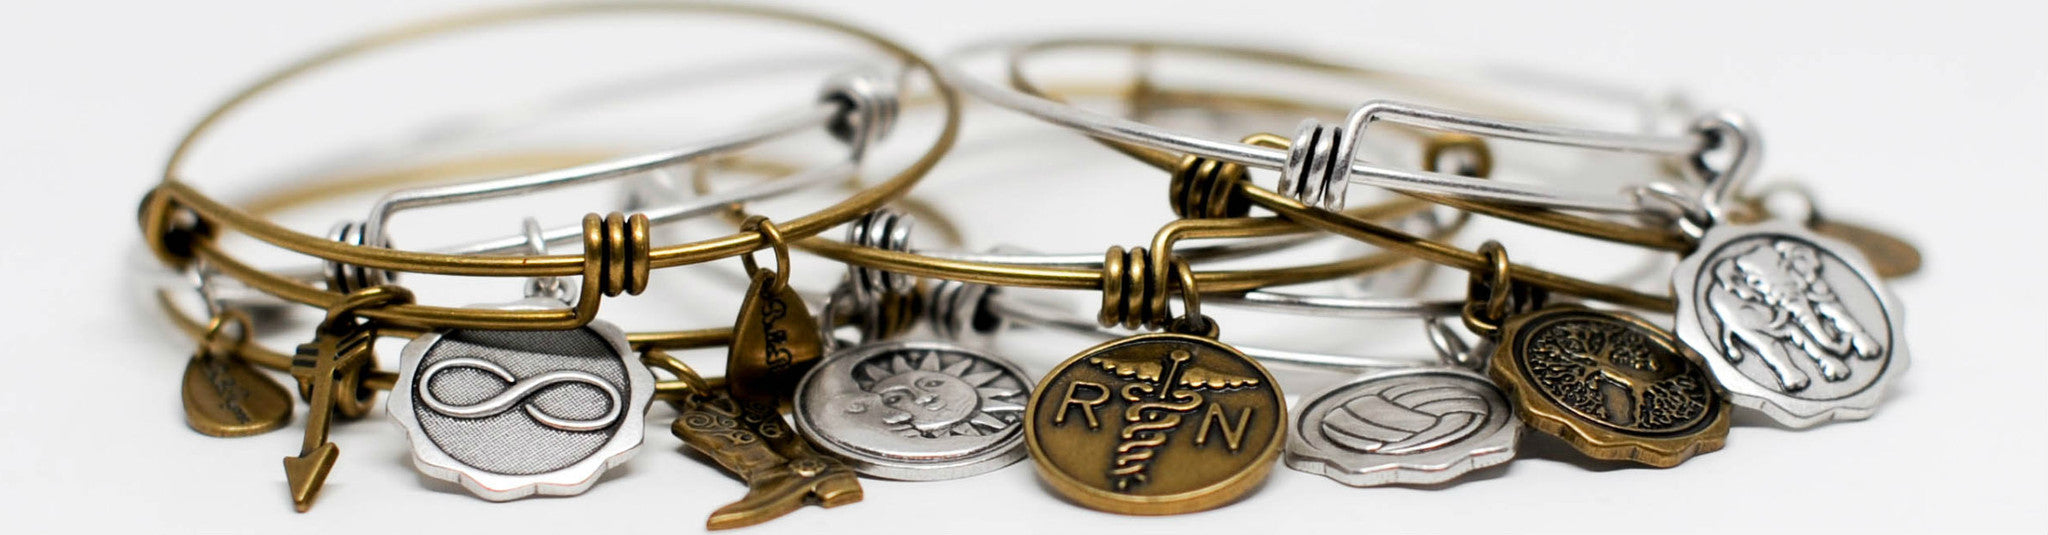 General Expandable Bangle Charm Bracelets